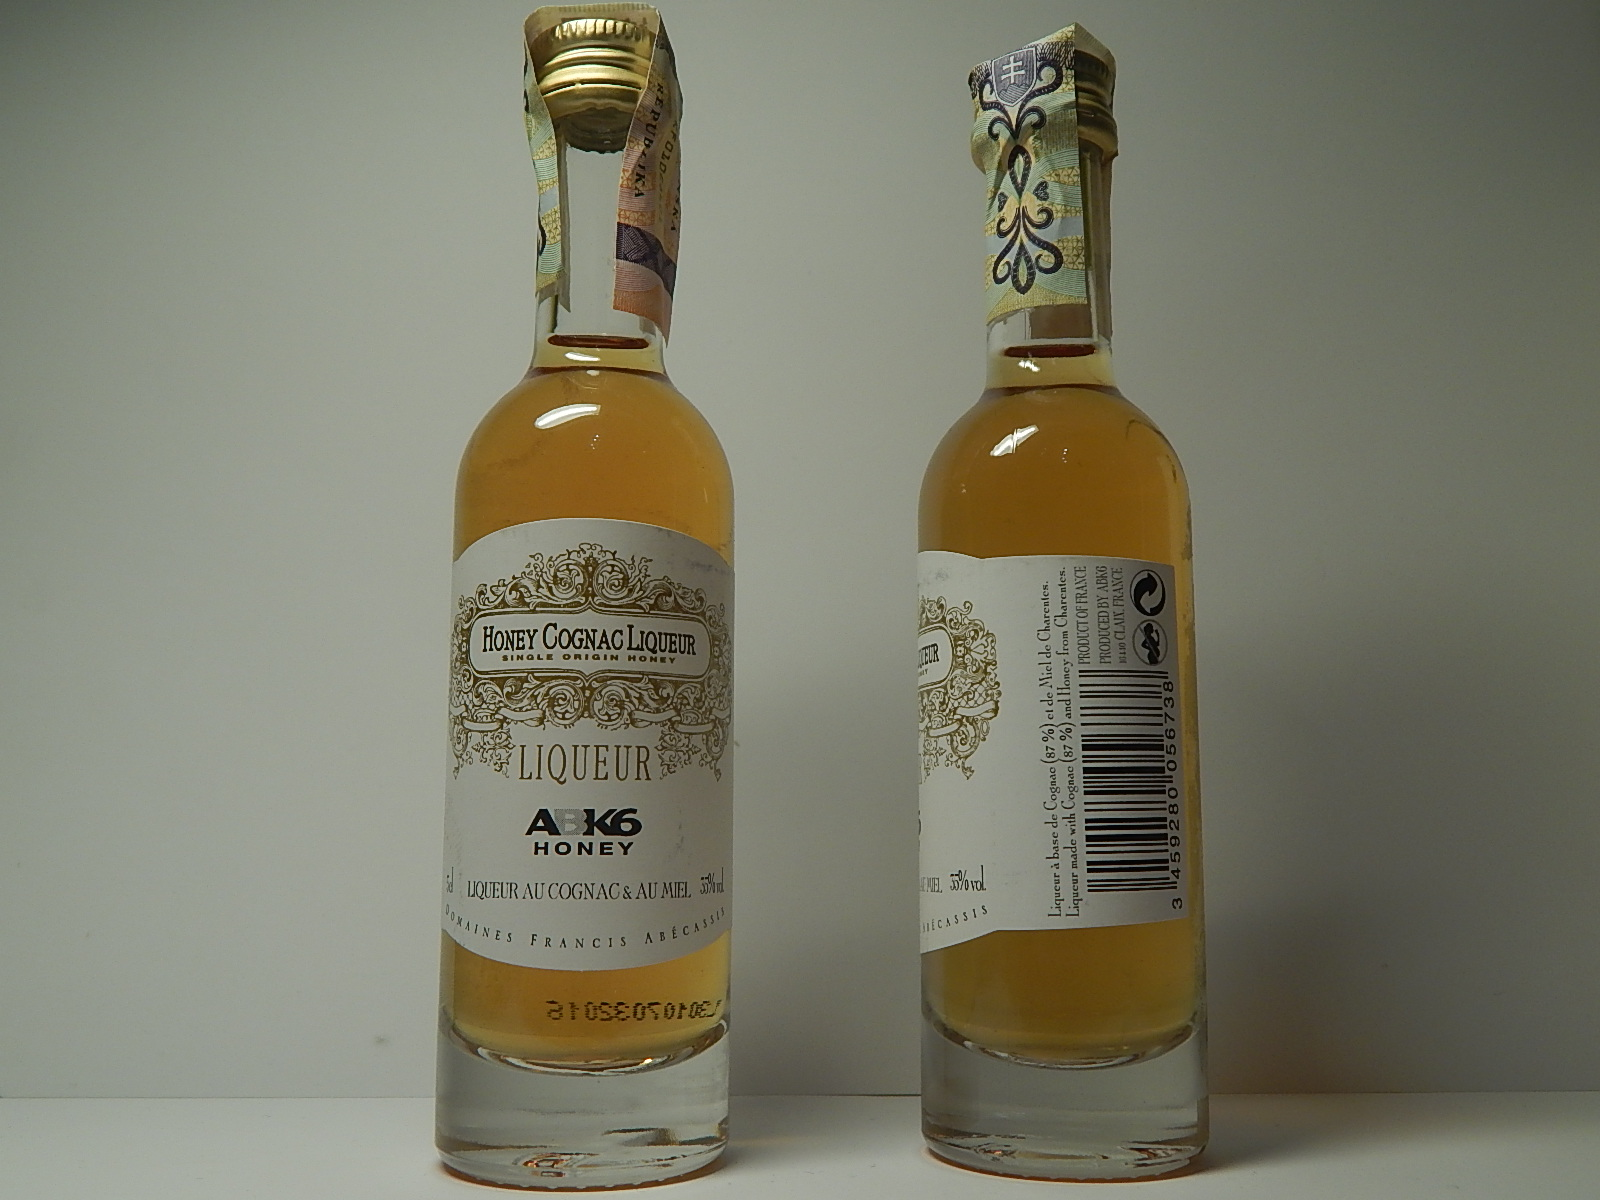 HONEY Cognac Liqueur